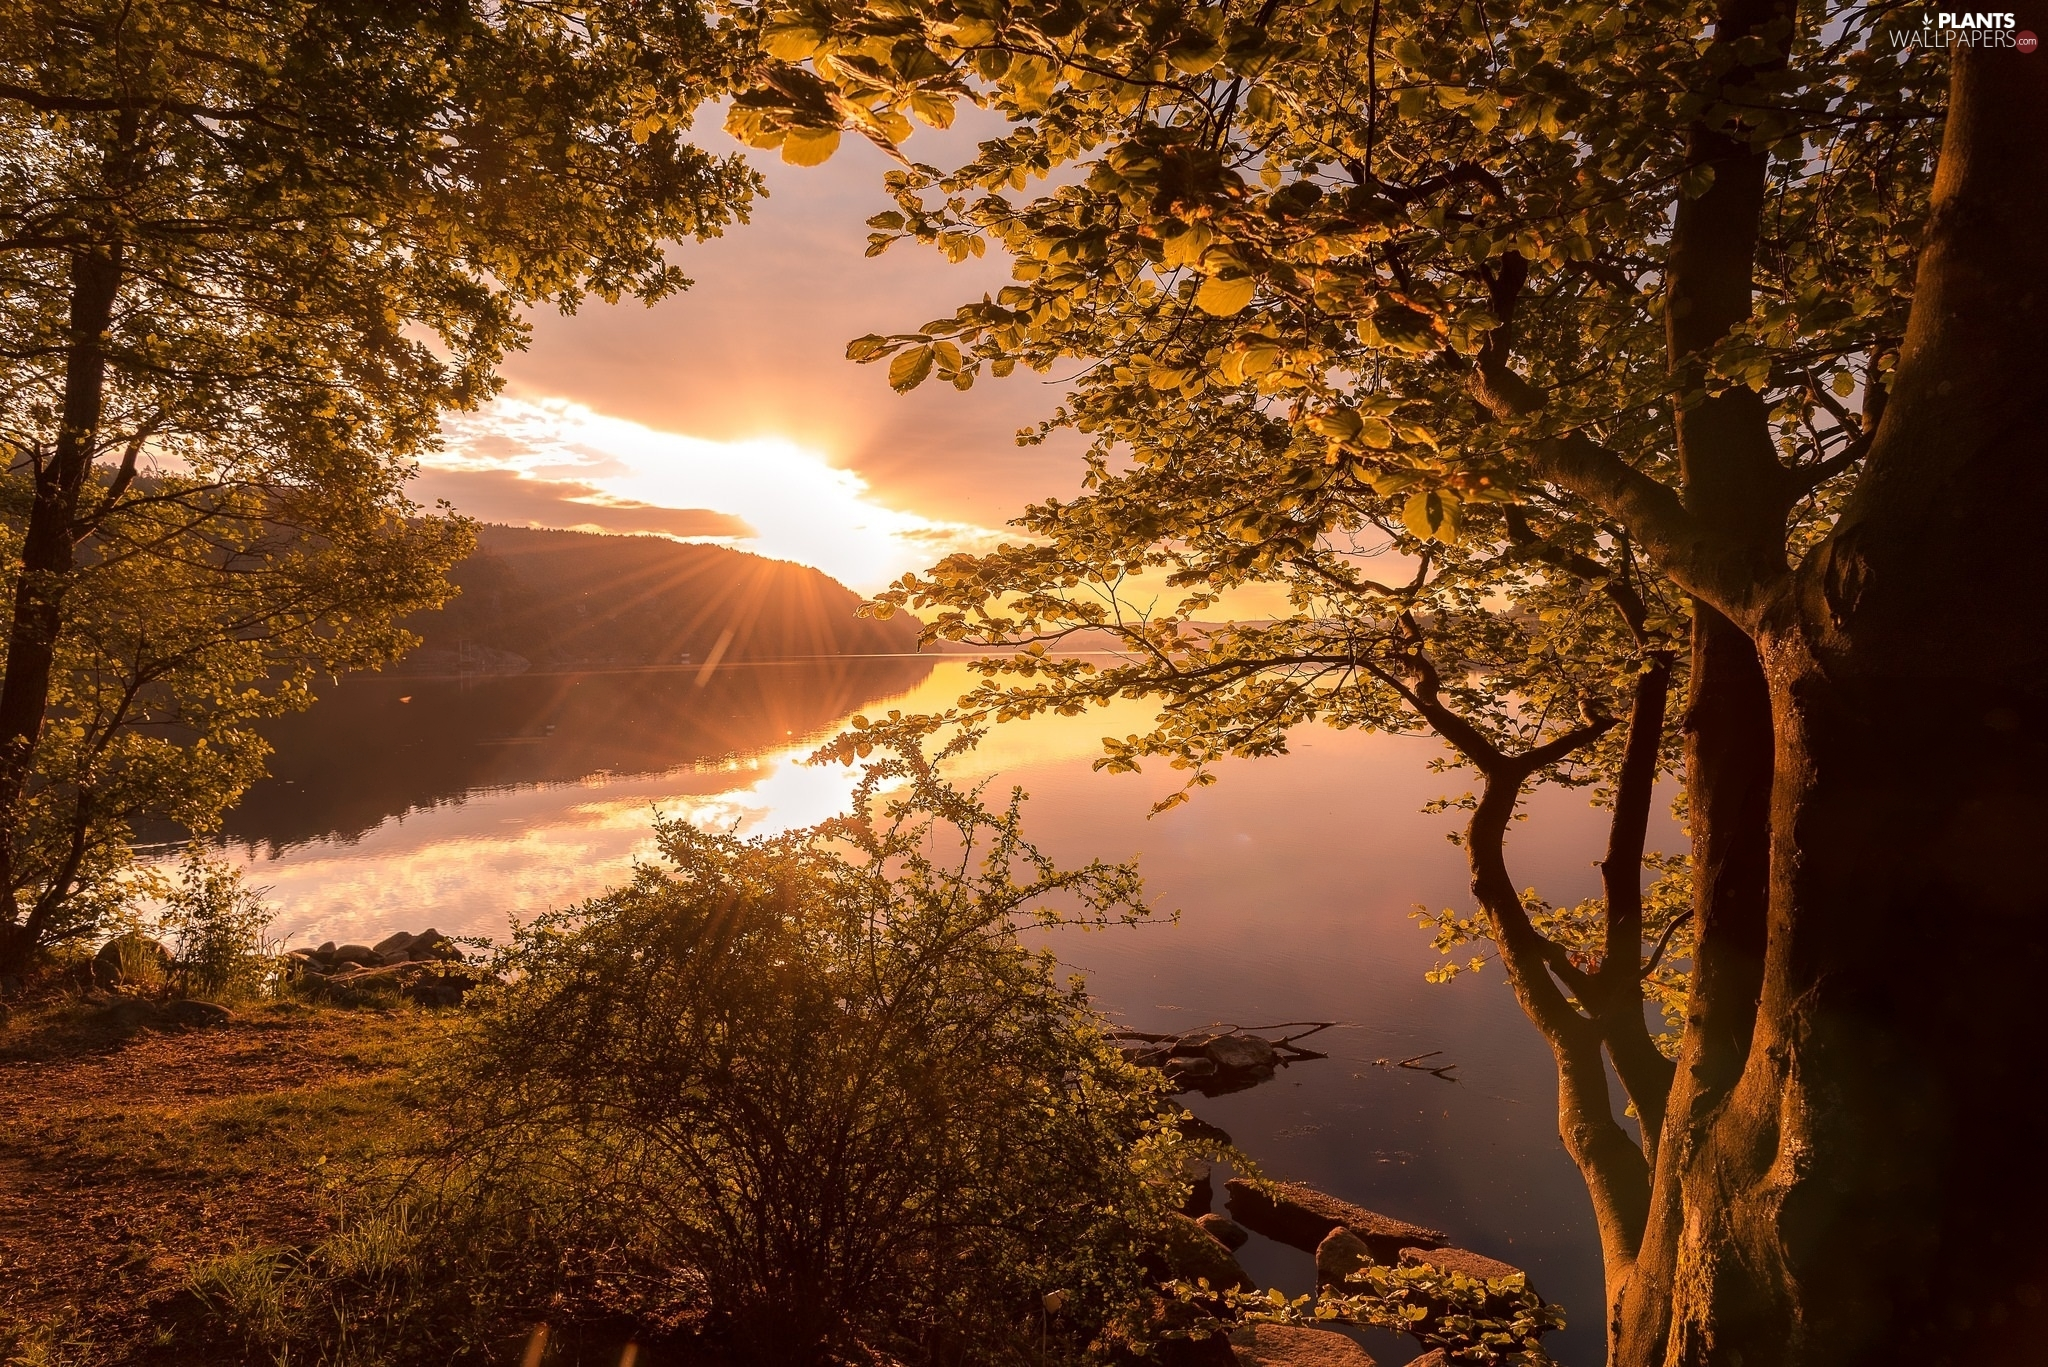 lake, Sunrise, trees, viewes, autumn